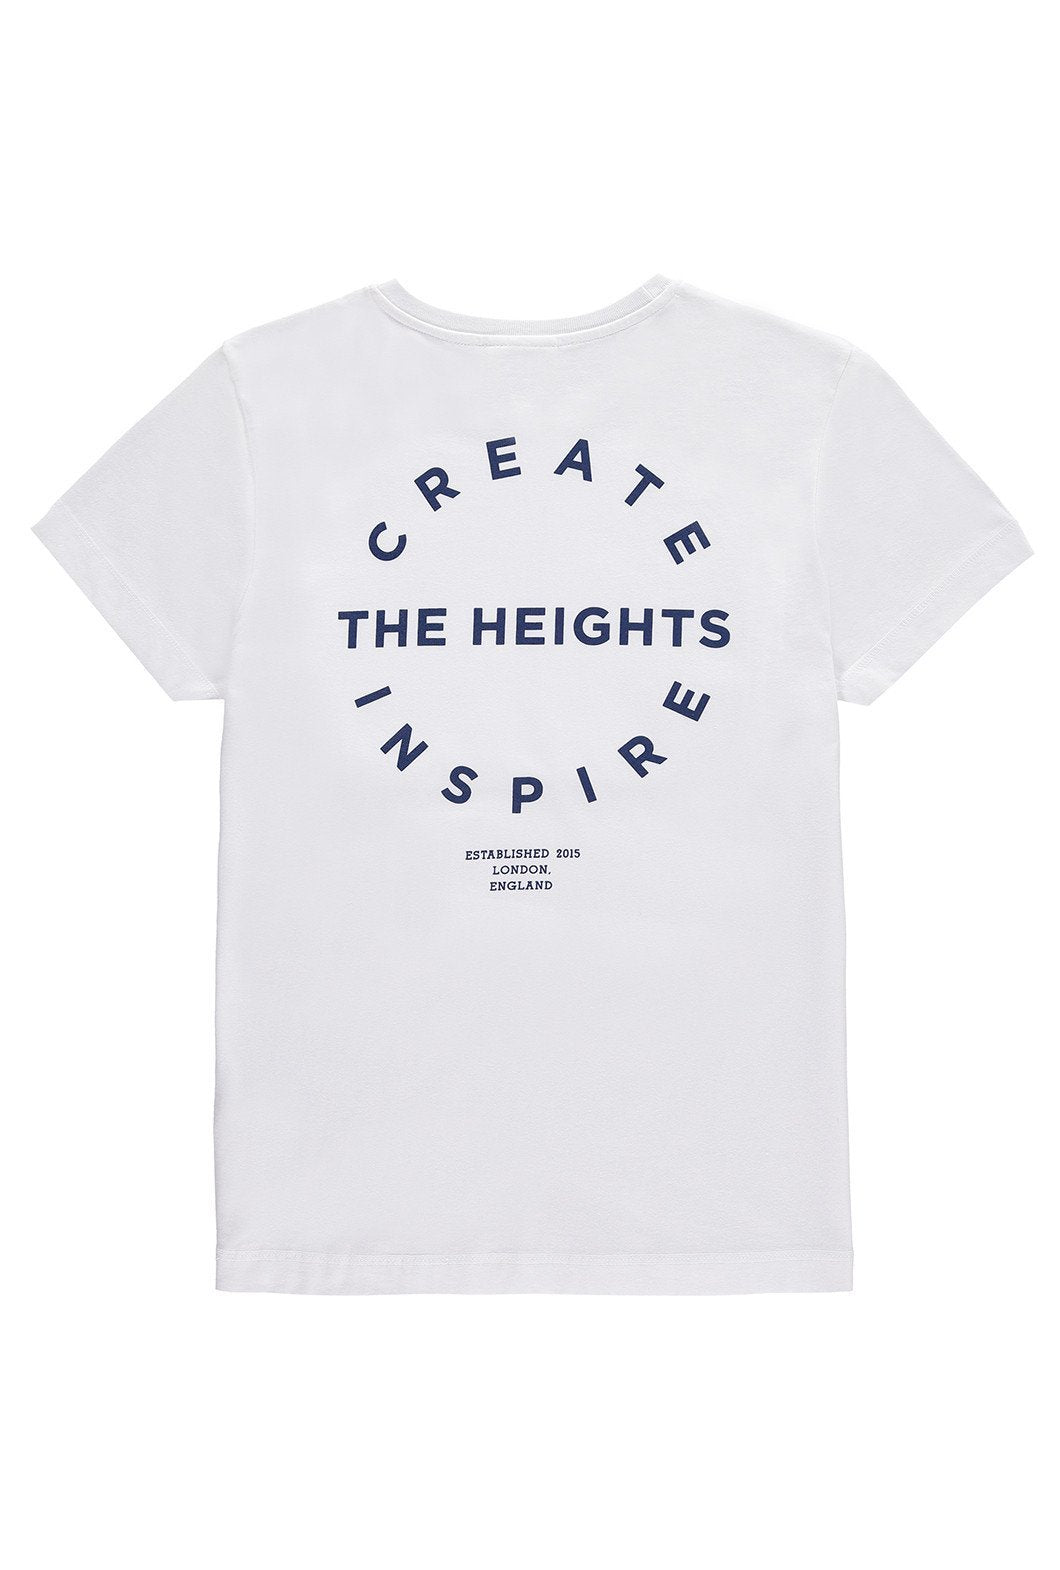 The Heights C&I Unisex Tee (White)